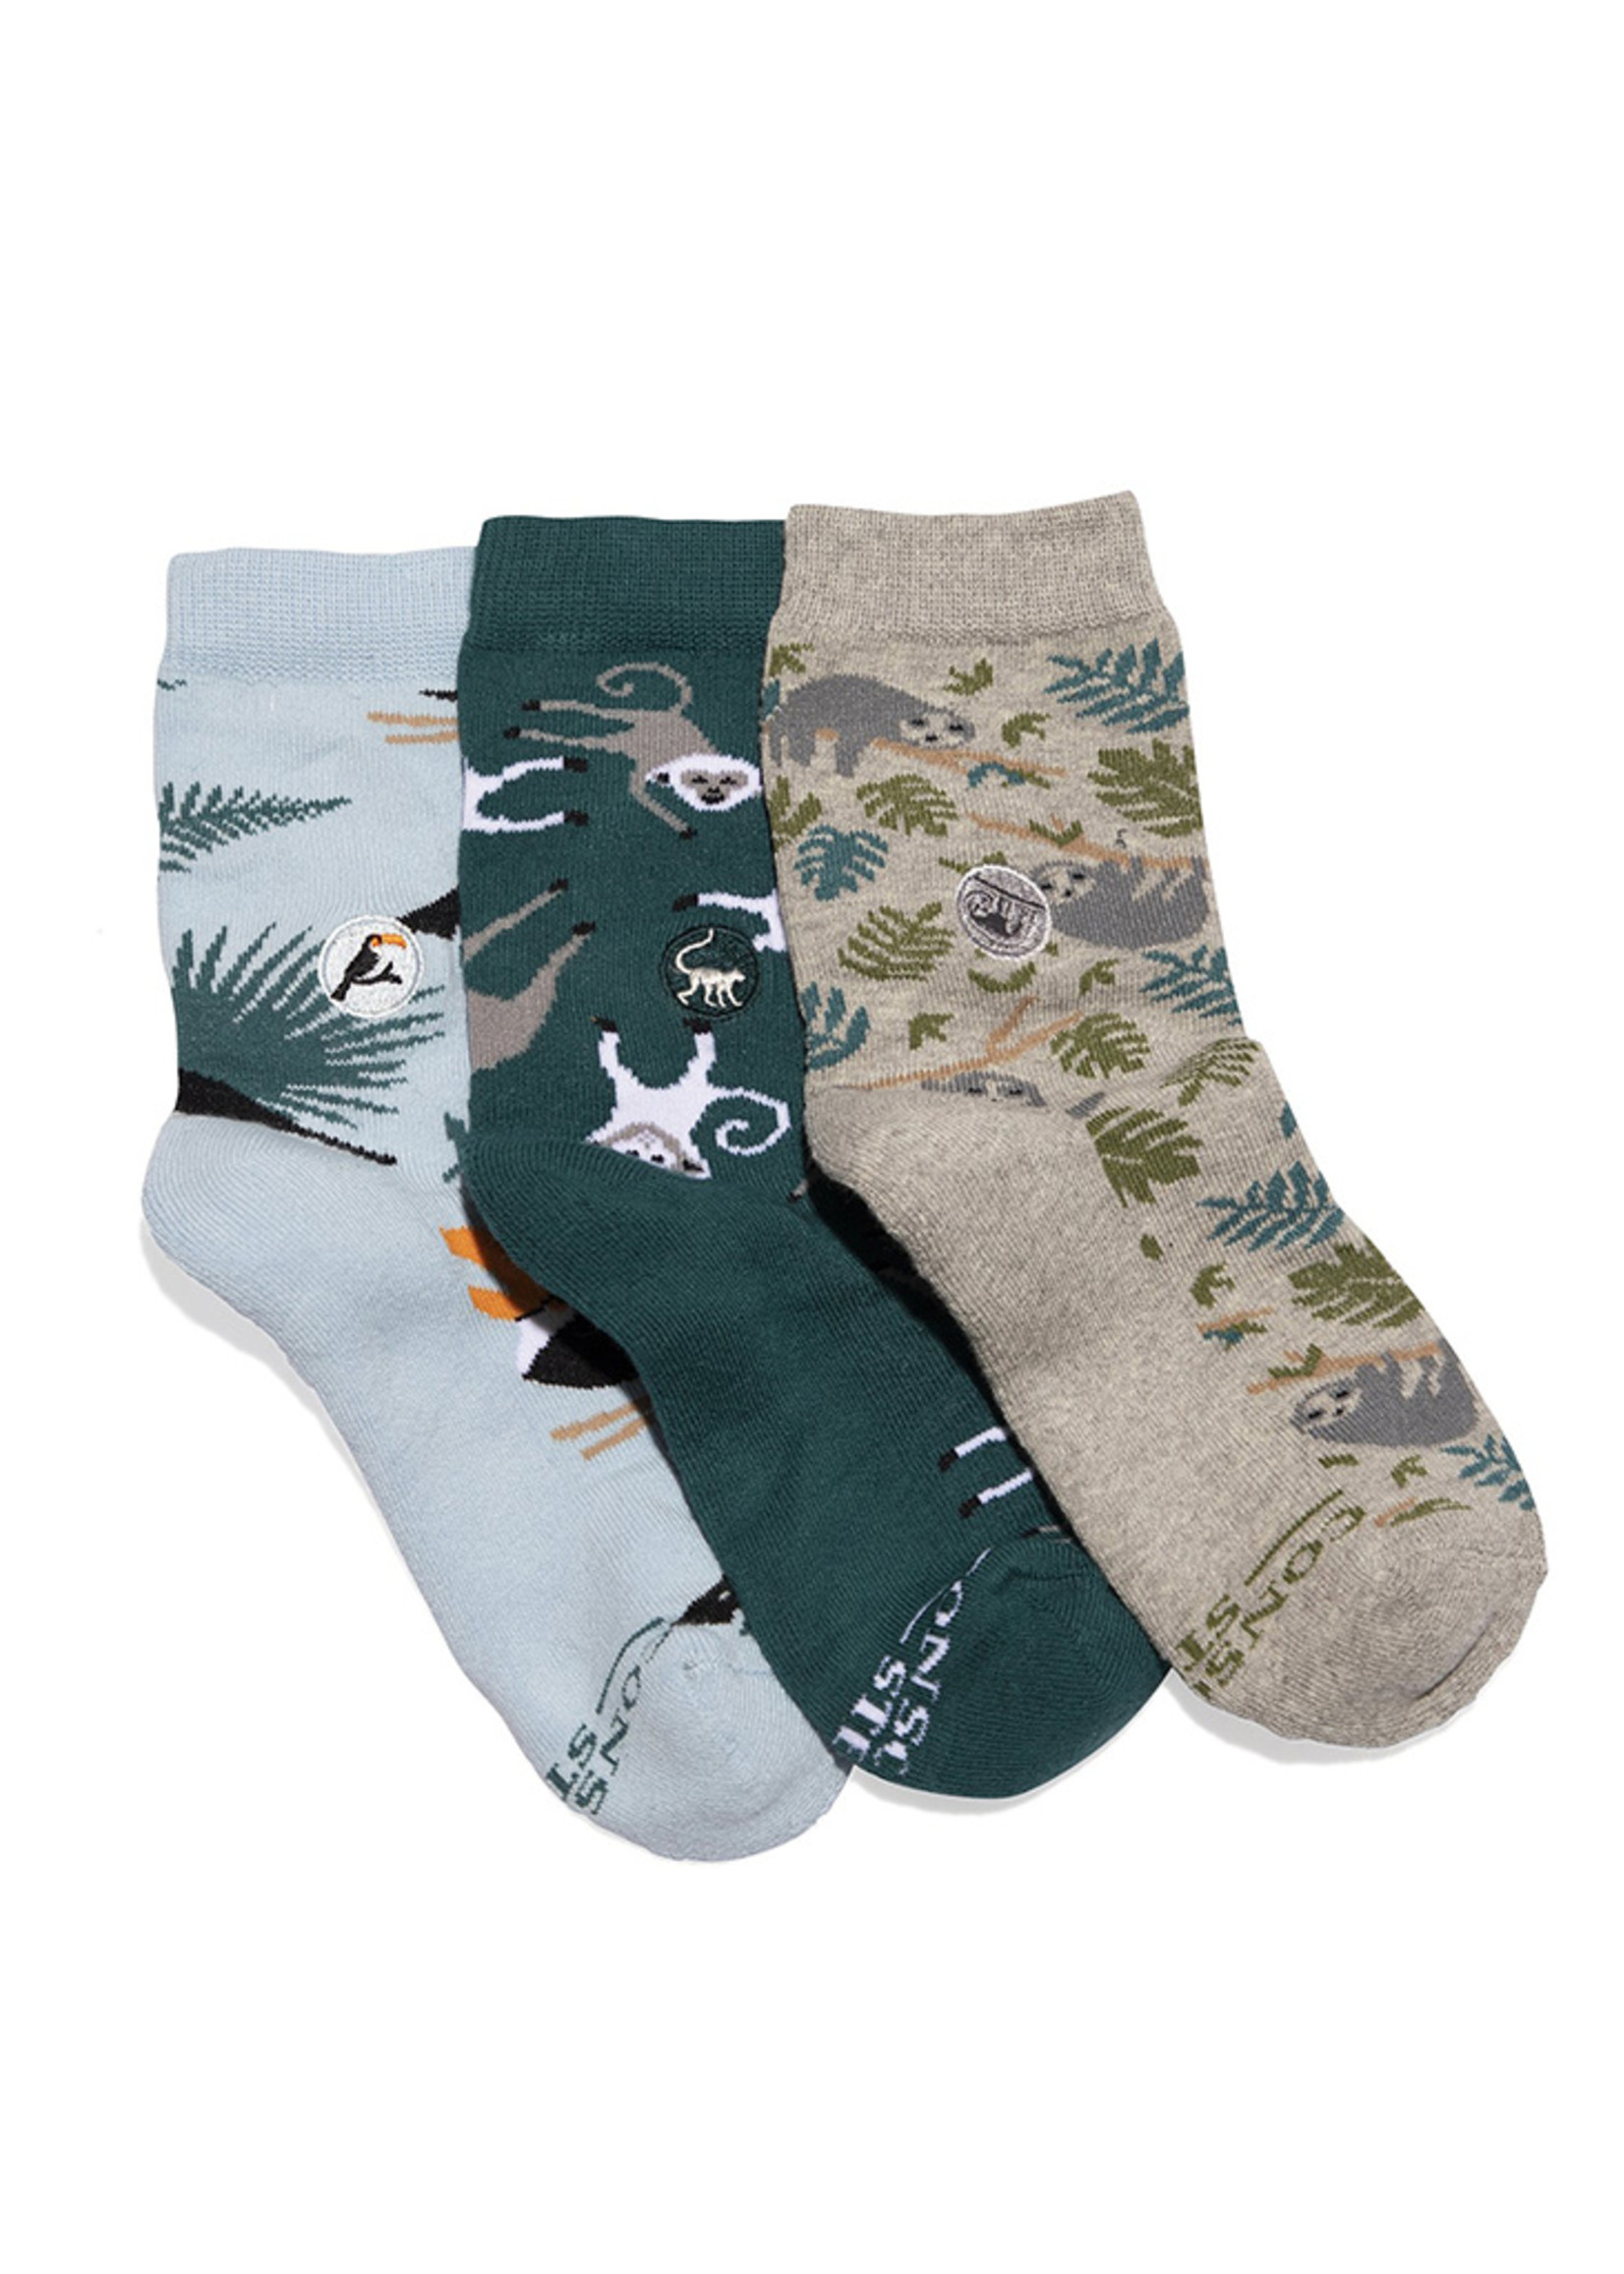 Conscious Step Kid's Sock Box Protect Rainforests 7-10Y